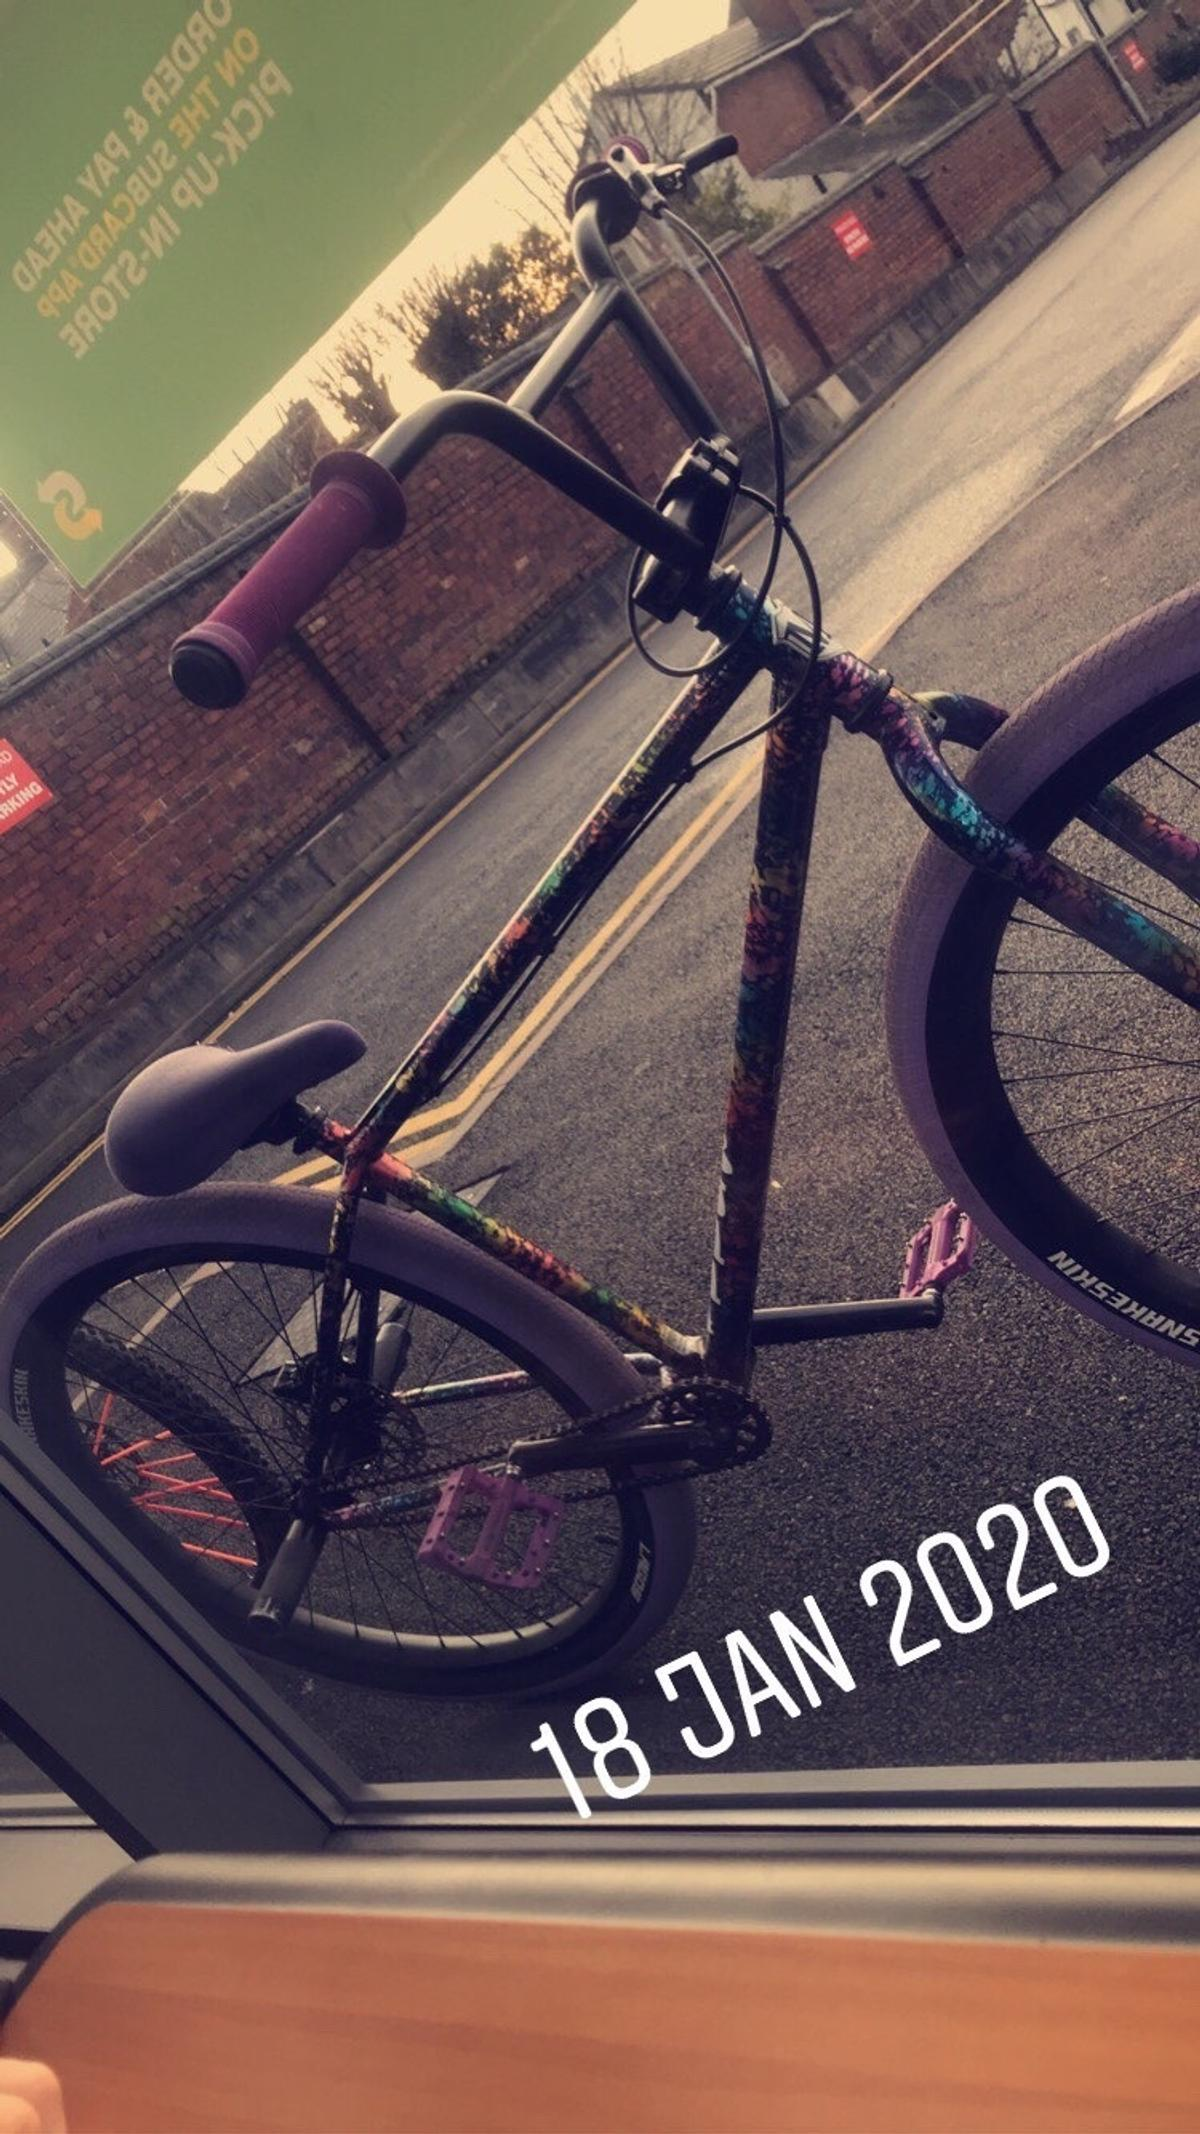 "Not %100 selling just send offers and swaps my way 29"" wheels Nuke proof neutron peddles Shimano deore rear brake Purple odi grips New shadow conspiracy bottom bracket"